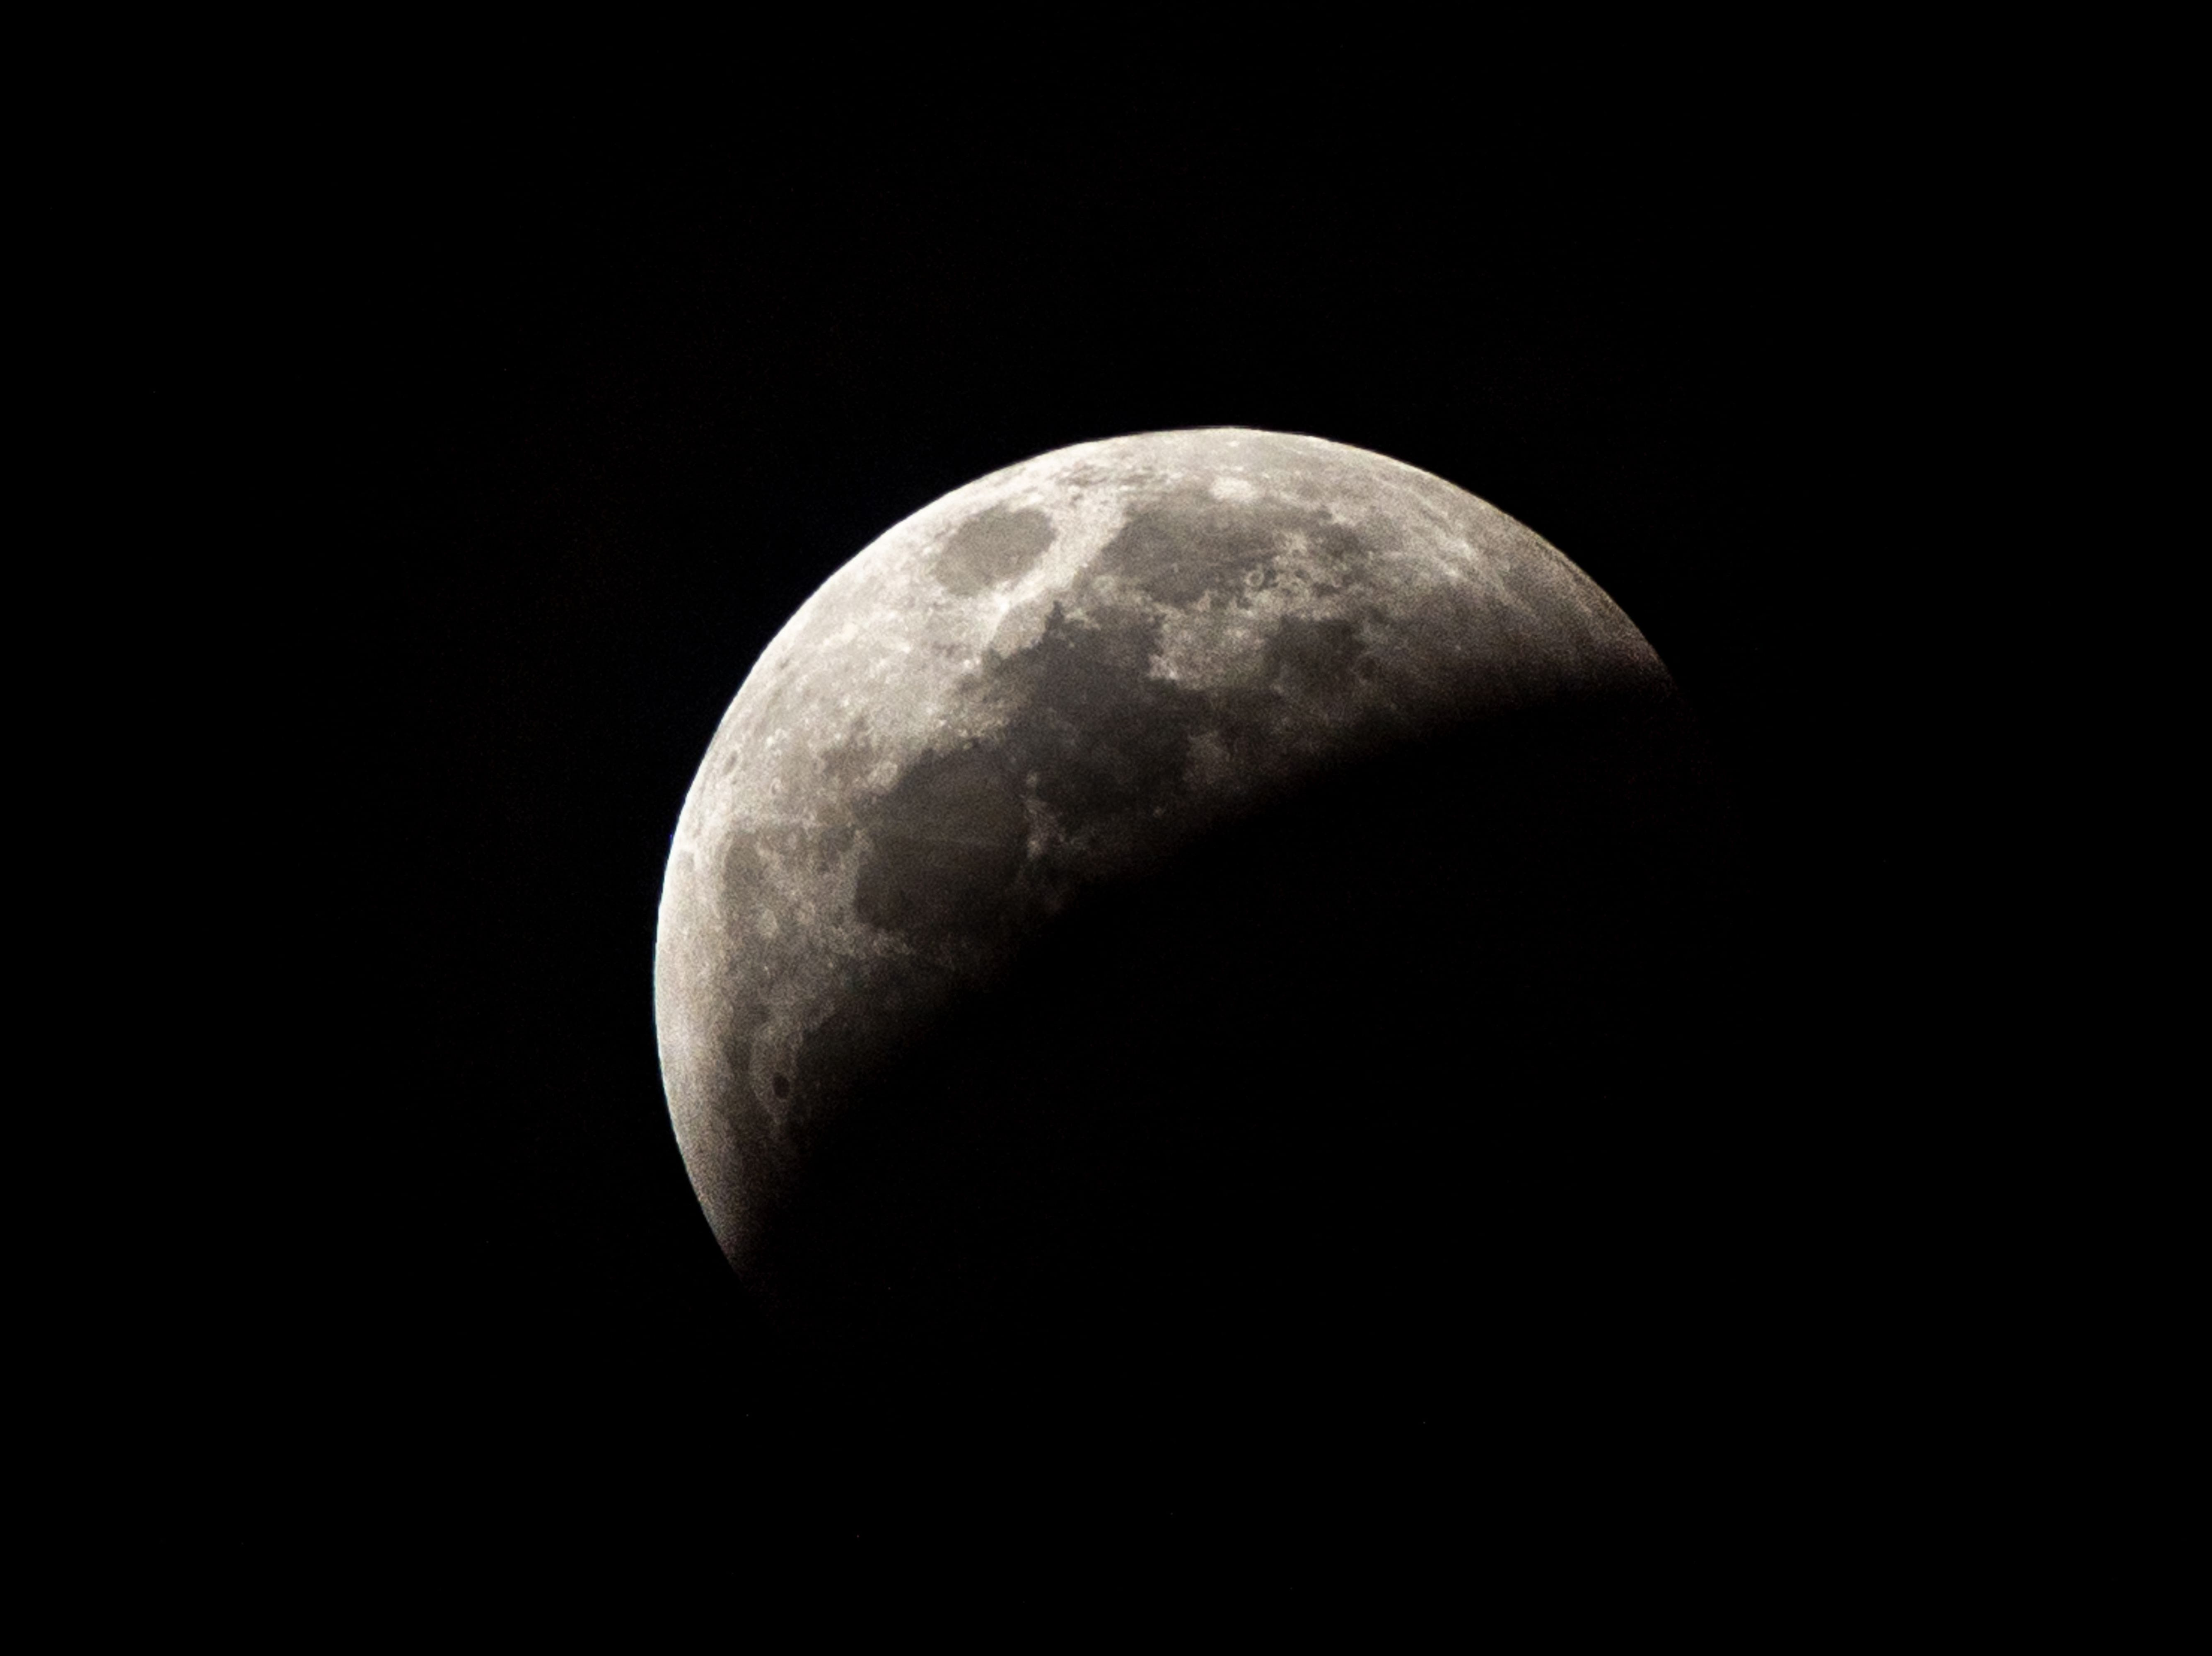 The so-called Super Blood Wolf Moon total lunar eclipse reaches a partial phase where more than half of the Moon is immersed in Earth's umbra, on Sunday January 20, 2019, in Miami, Florida. - The January 21 total lunar eclipse will be the last one until May 2021, and the last one visible from the United States until 2022. (Photo by Gaston De Cardenas / AFP)GASTON DE CARDENAS/AFP/Getty Images